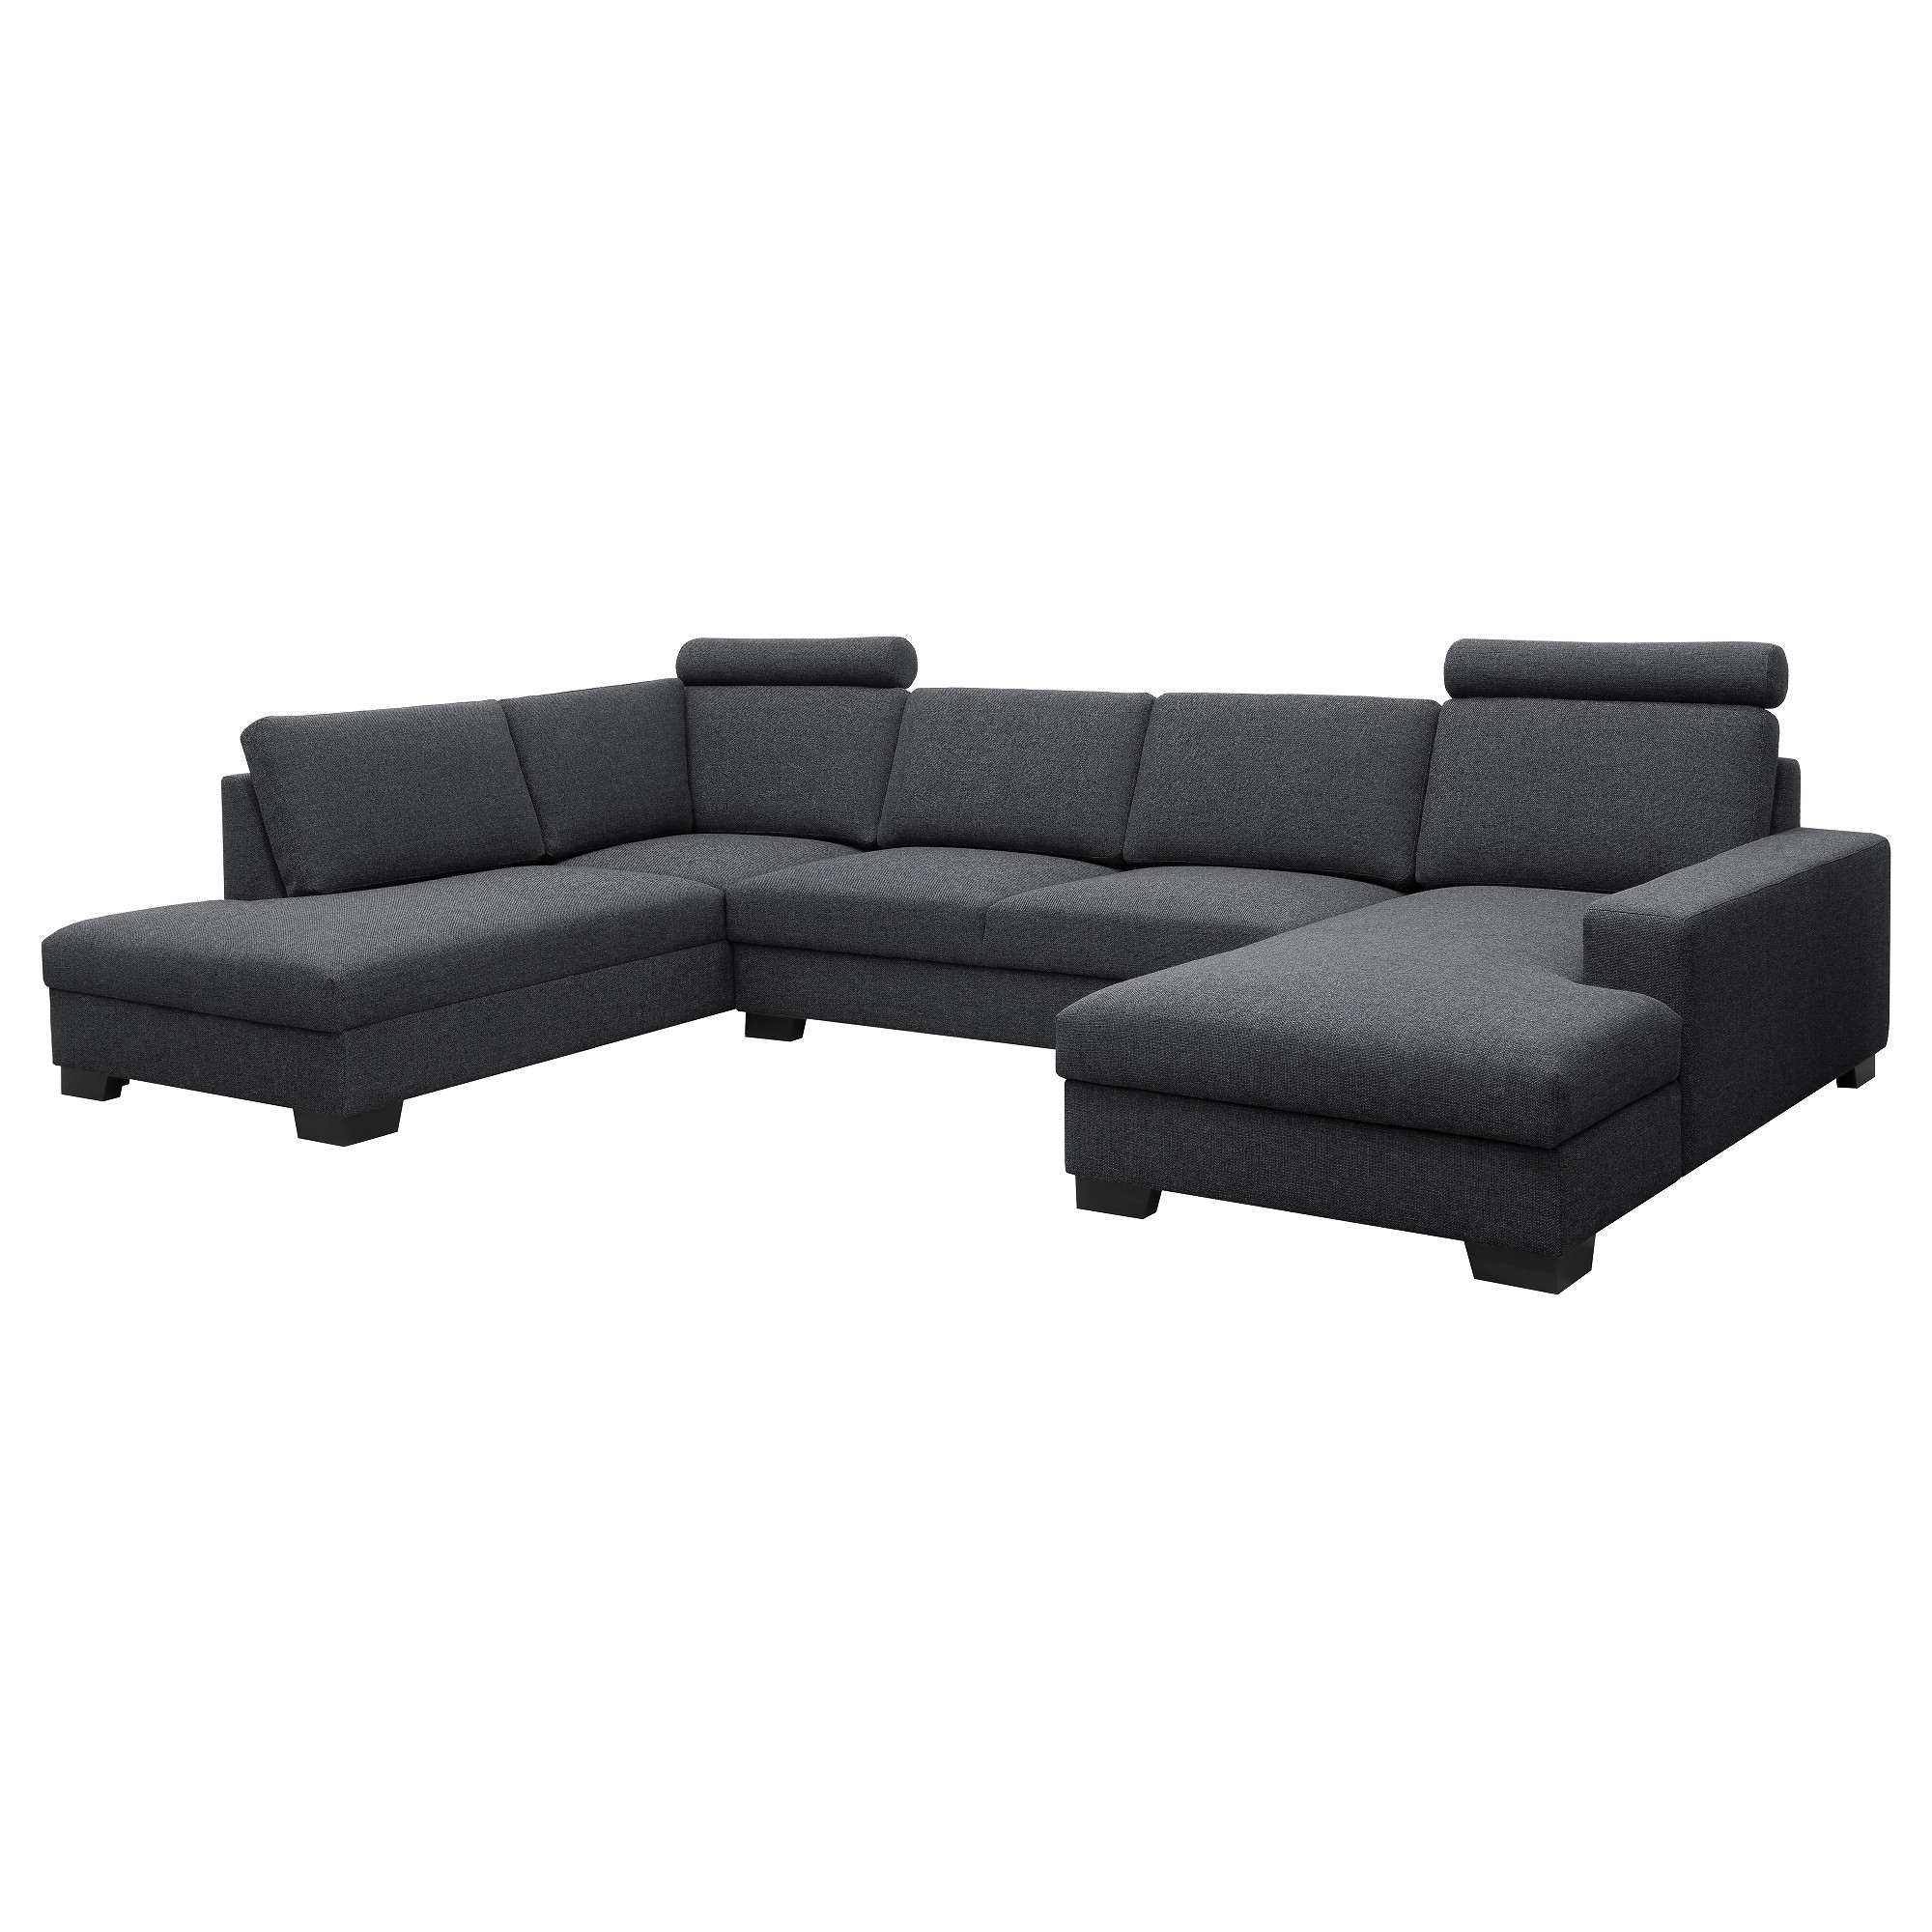 wohnzimmer couch g nstig hausgestaltung ideen. Black Bedroom Furniture Sets. Home Design Ideas